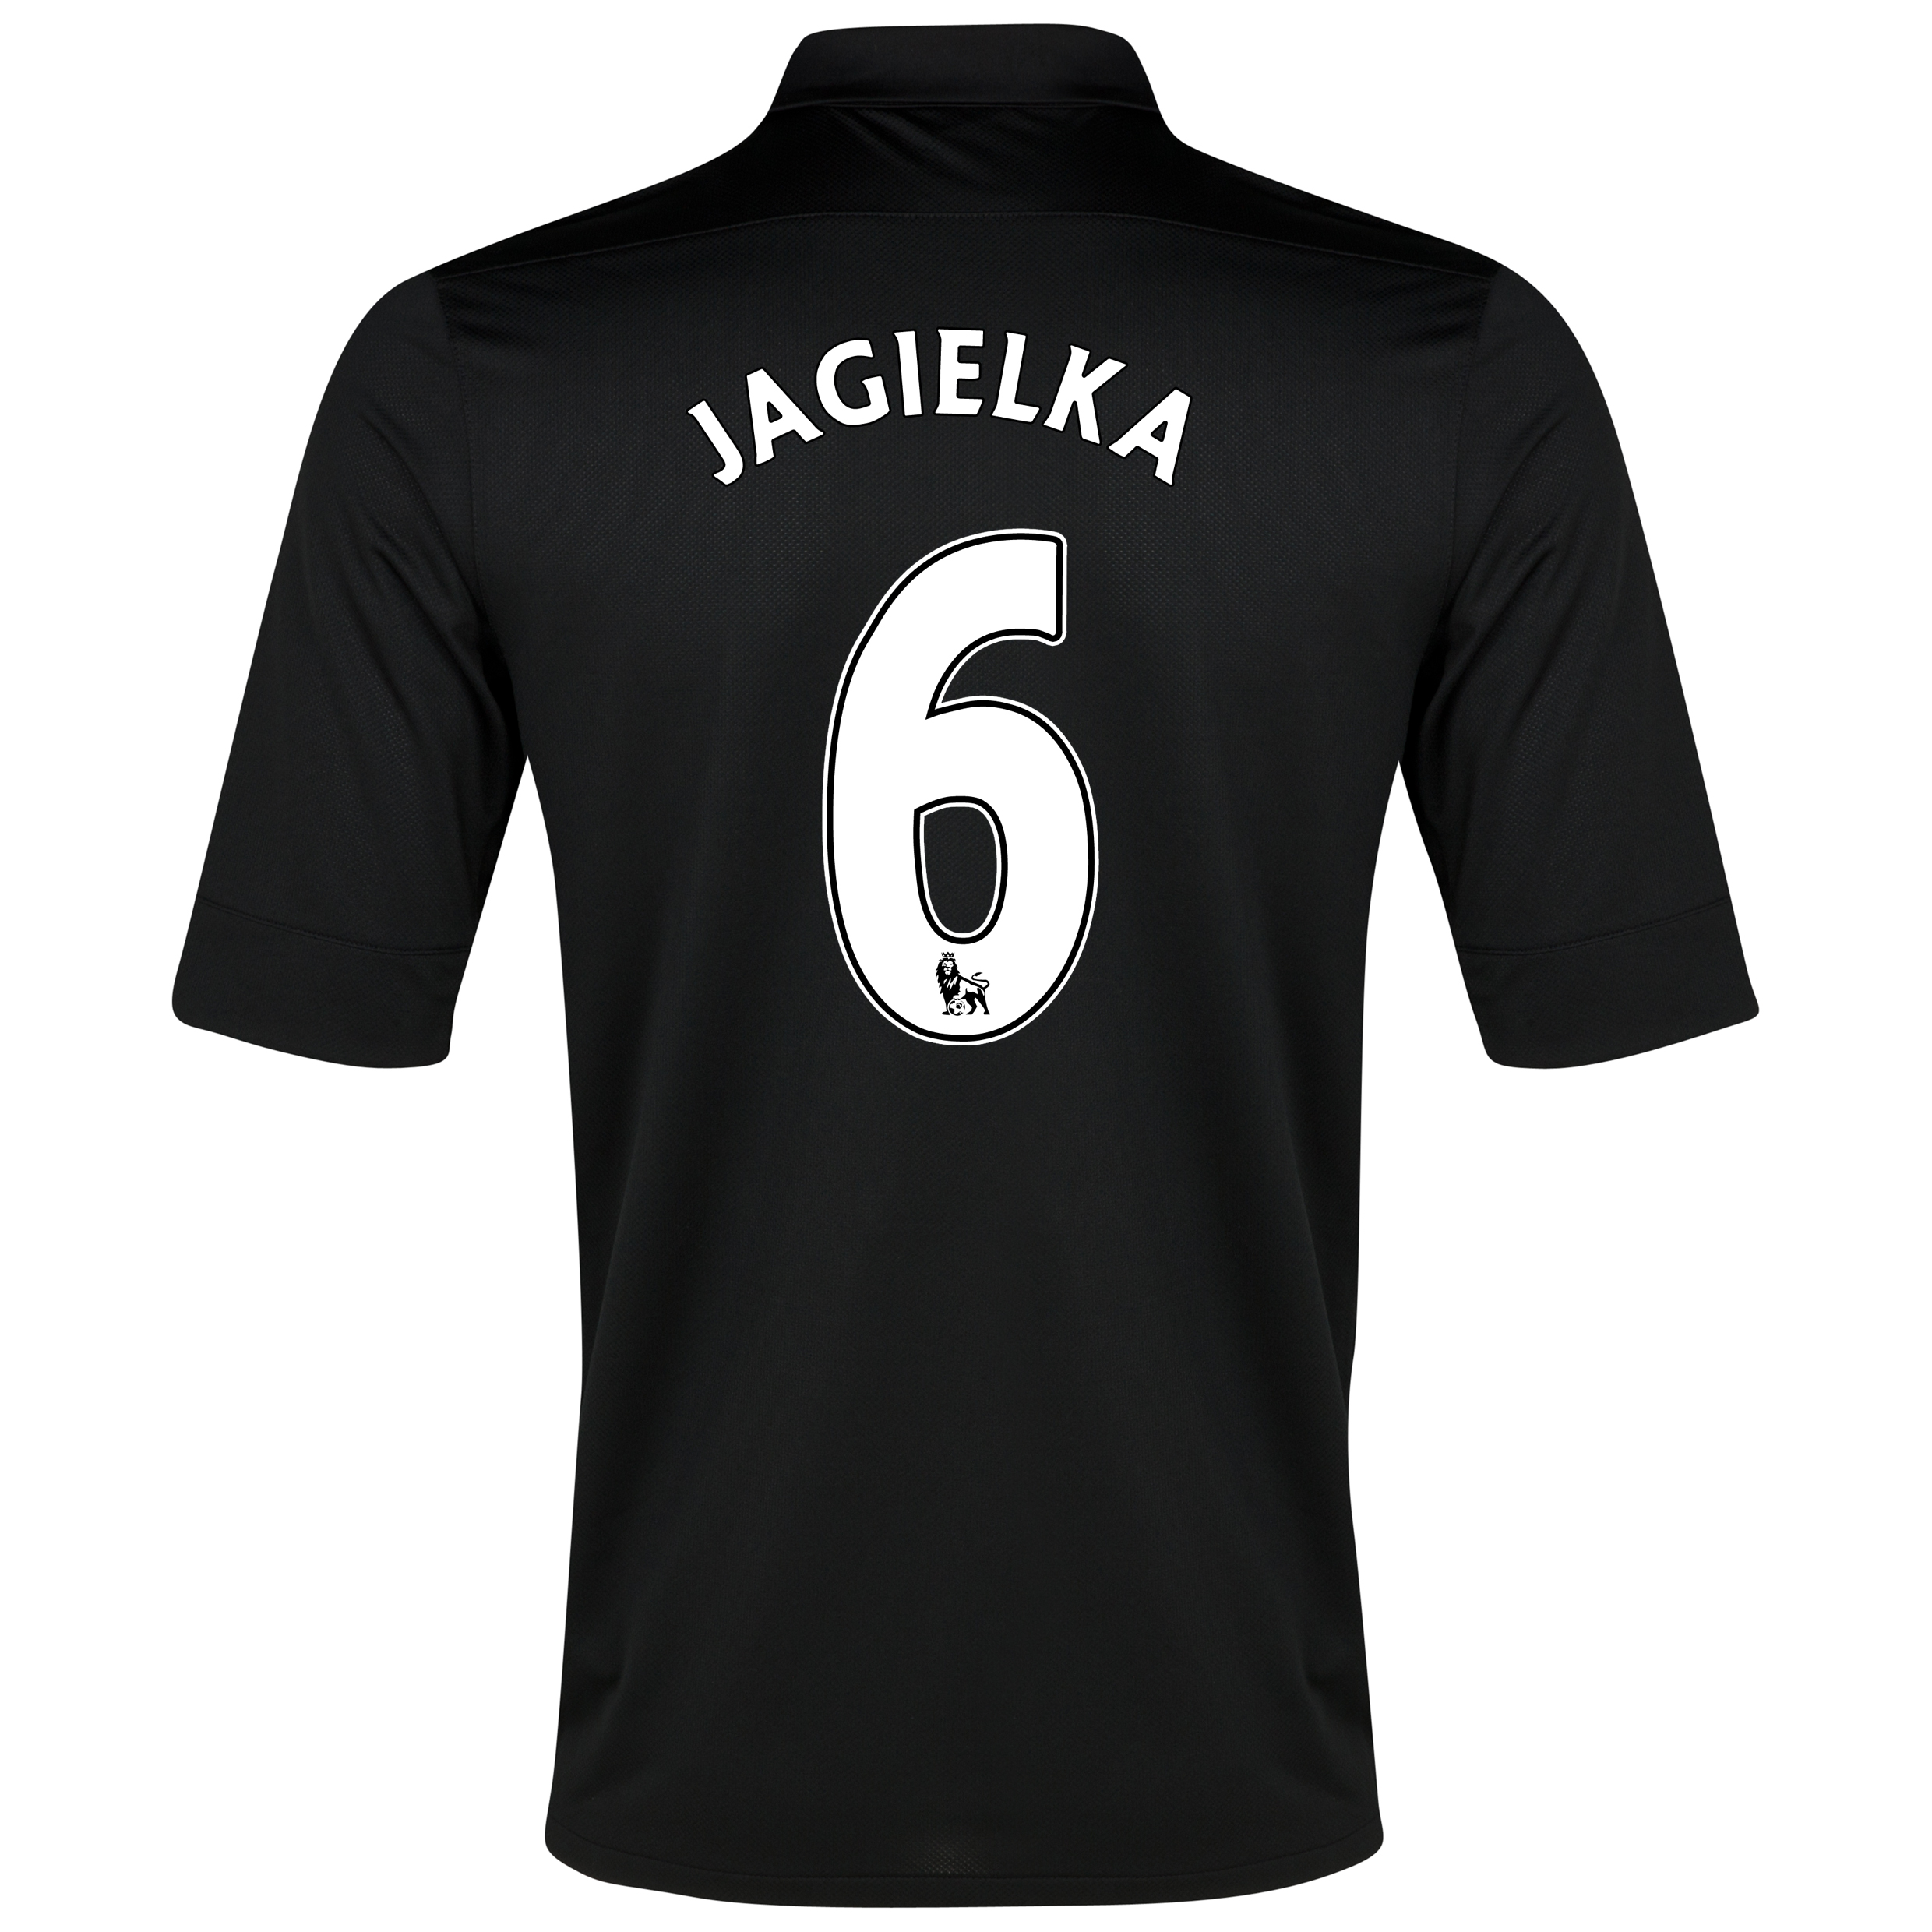 Everton Away Shirt 2012/13 - Junior with Jagielka 6 printing